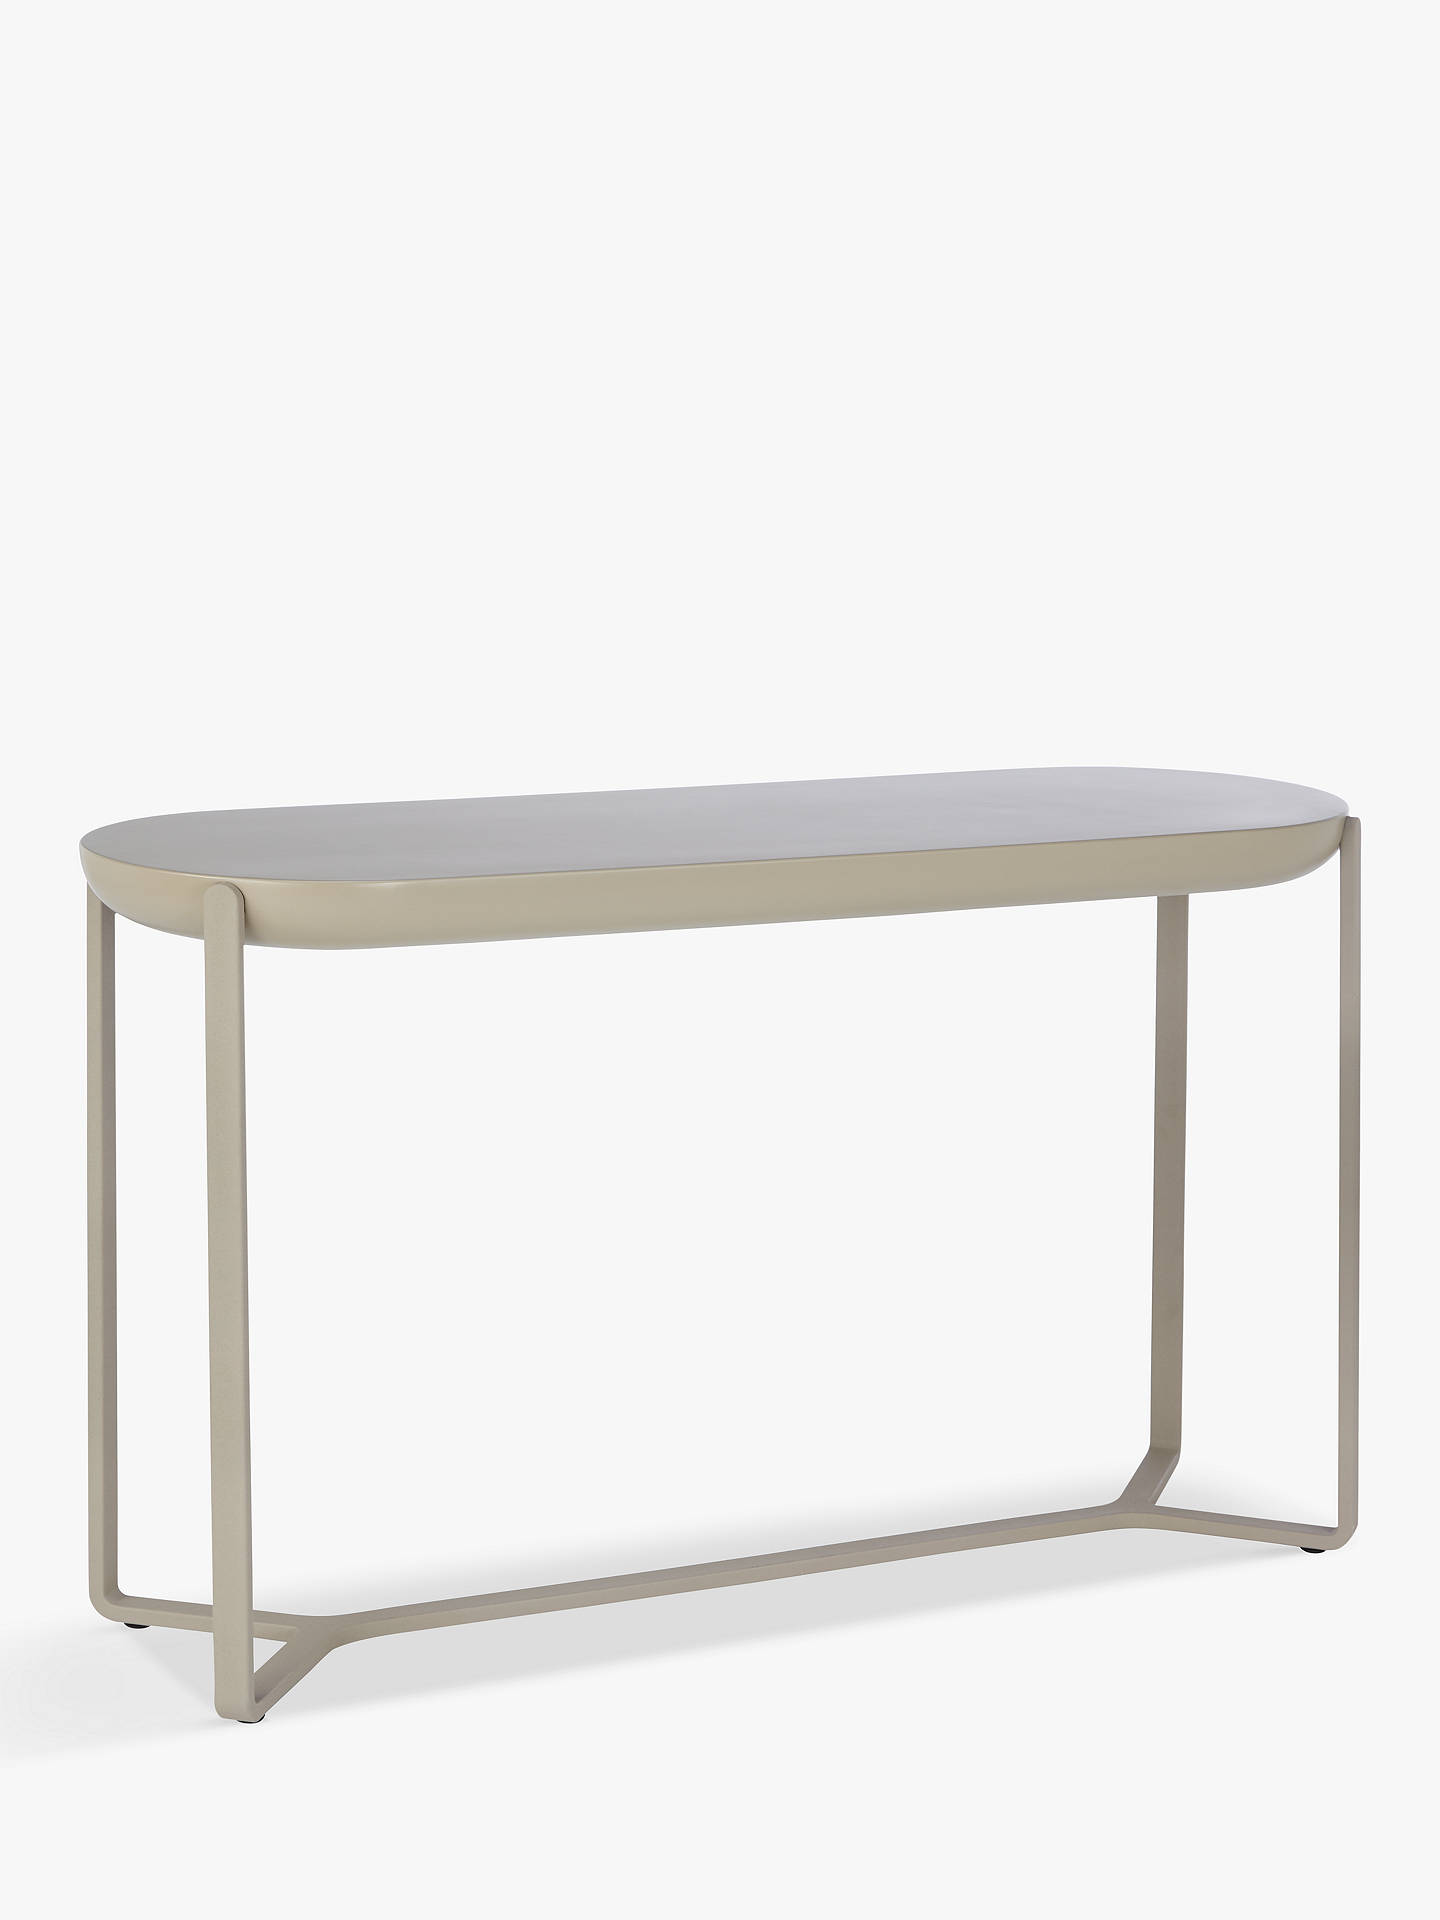 online store dda6e f4579 Doshi Levien for John Lewis Open Home Ballet Console Table